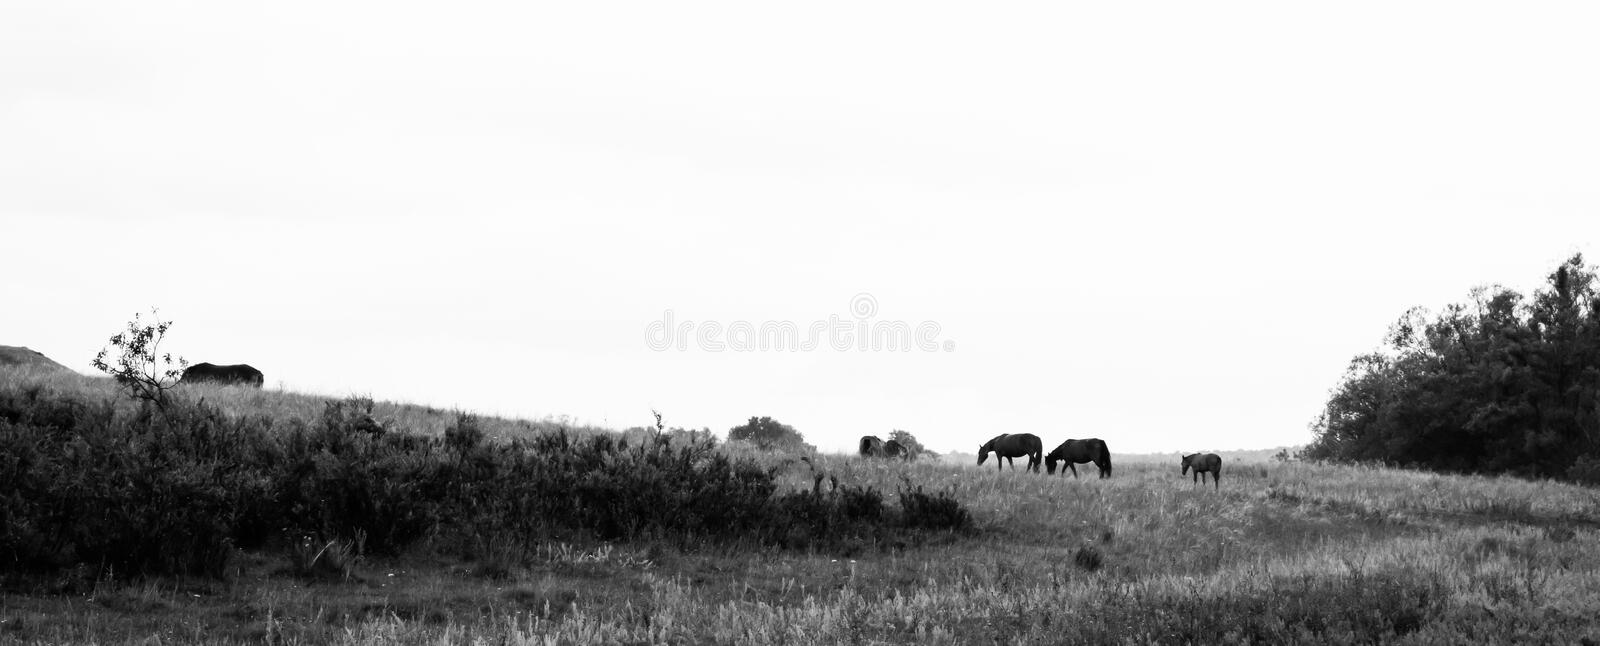 Herd of horses on rural road. Horse farm pasture with mare and foal.Black and white photo stock image